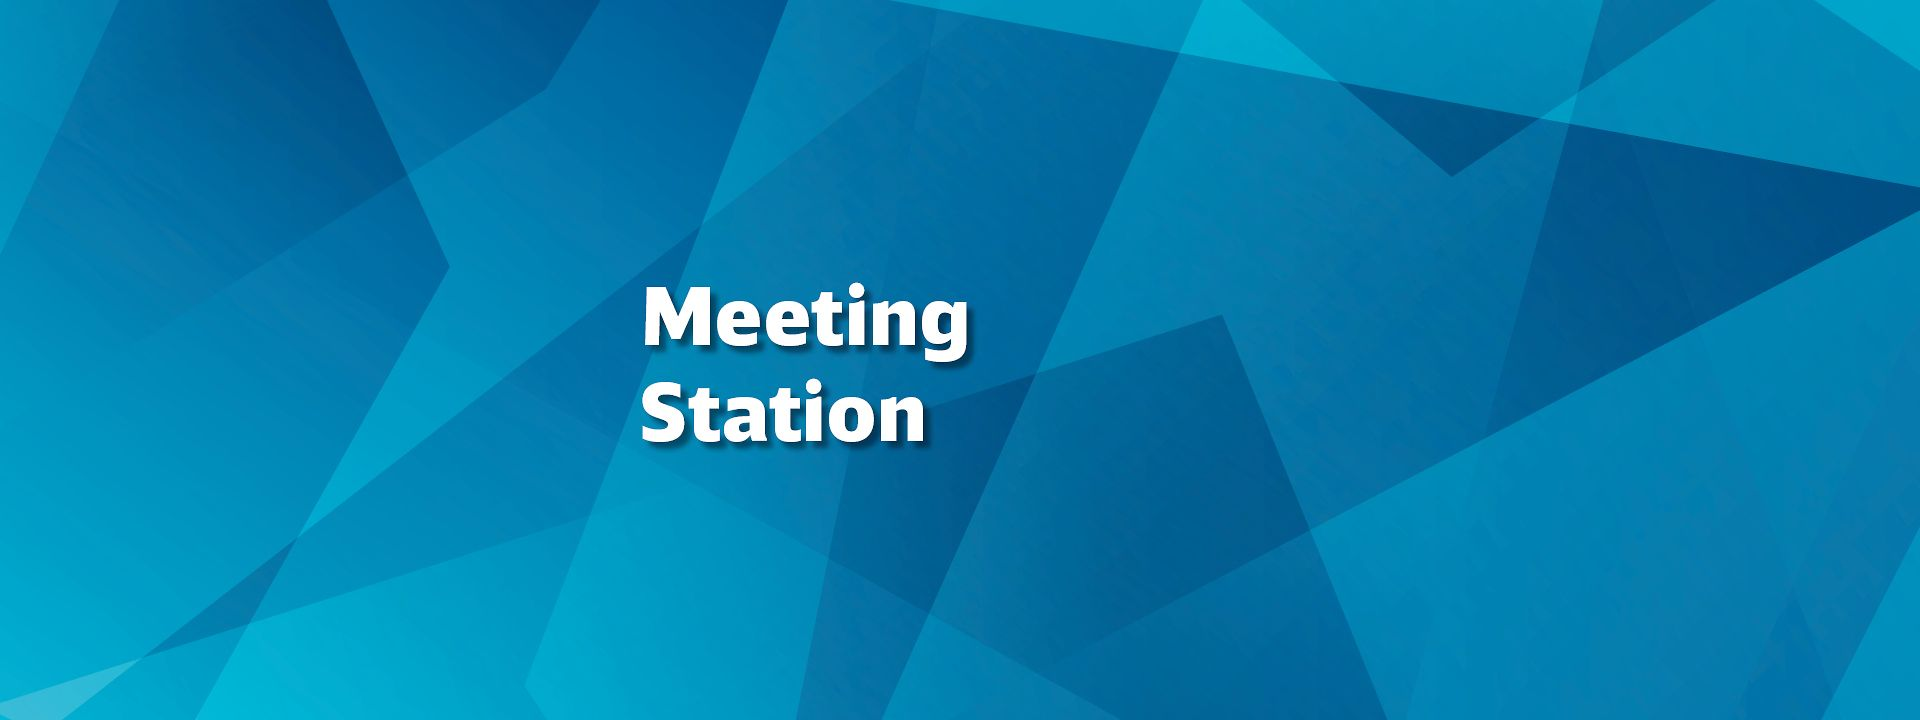 DB Systel_Meeting Station_Navigationsnadel